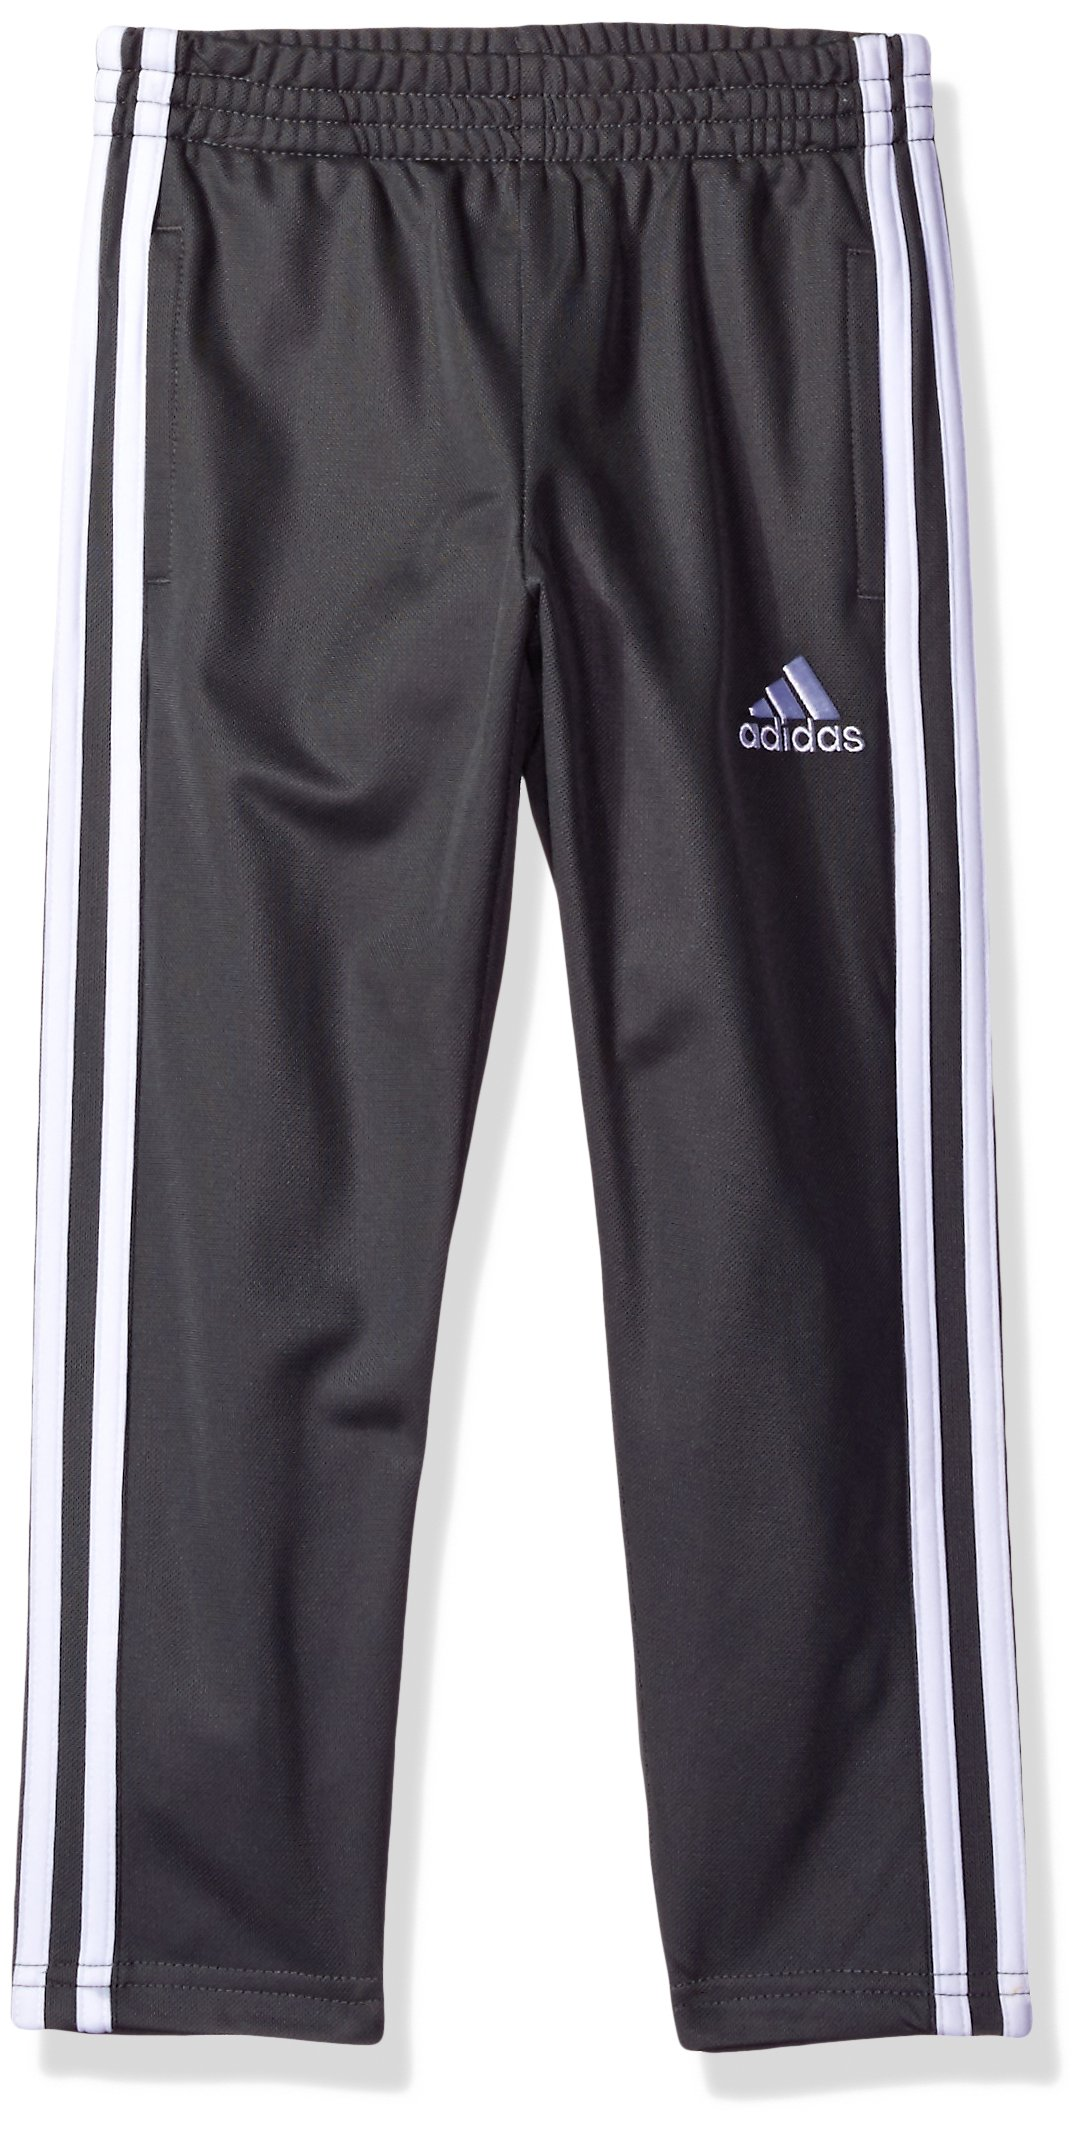 adidas Boys' Little Tricot Pant, Dark Gray, 7